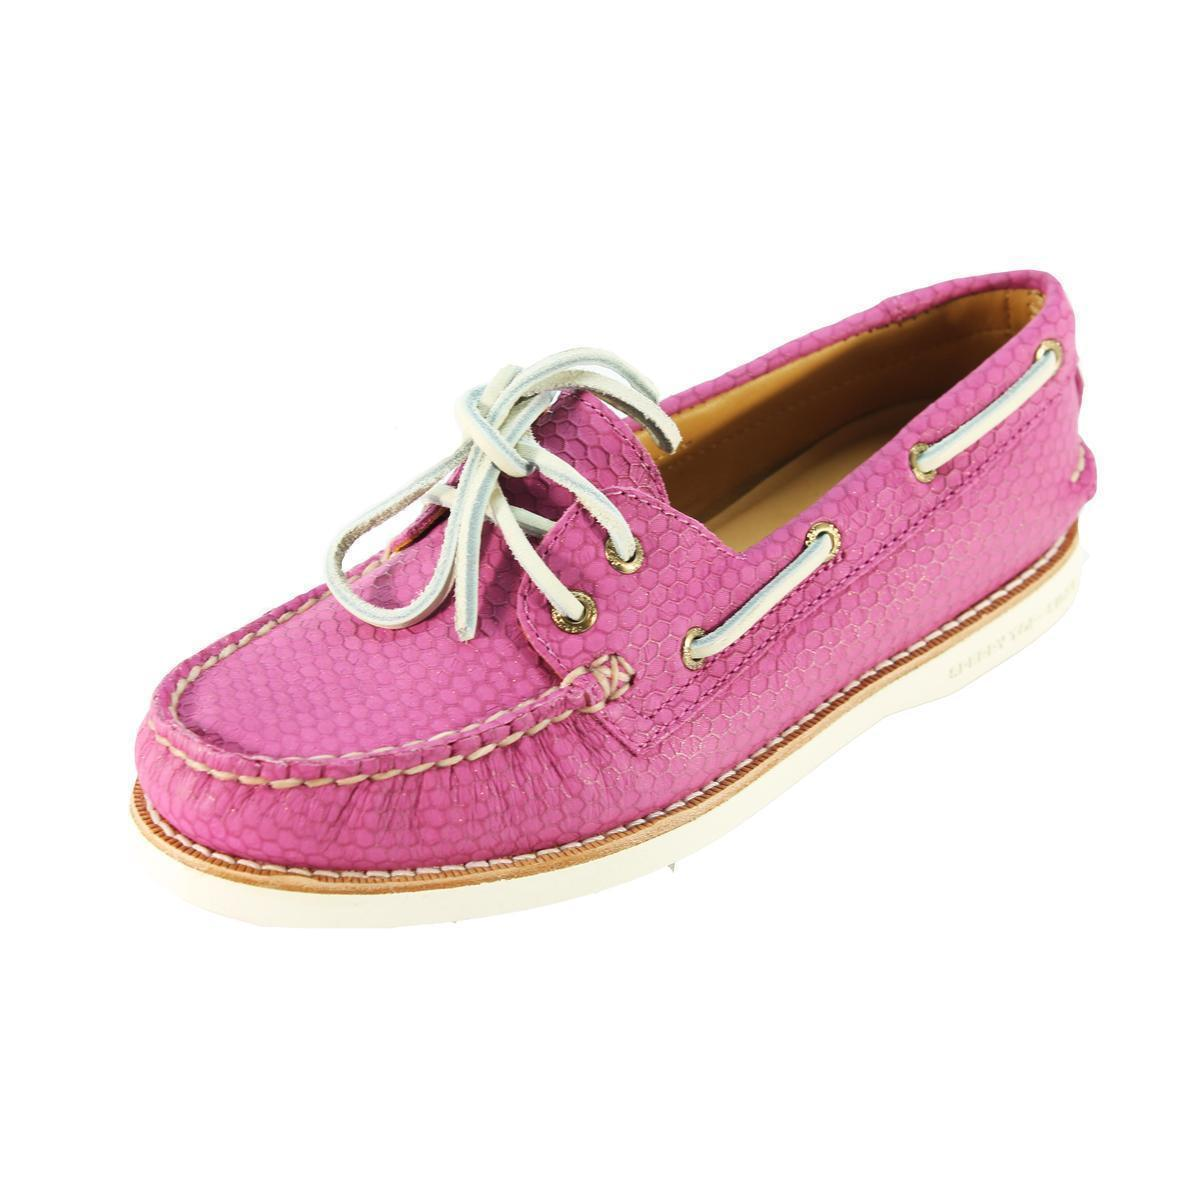 Sperry Top-Sider Gold Cup A/O Donna Pink Boat 5 Shoe  STS95569 SZ 5 Boat M 458a79